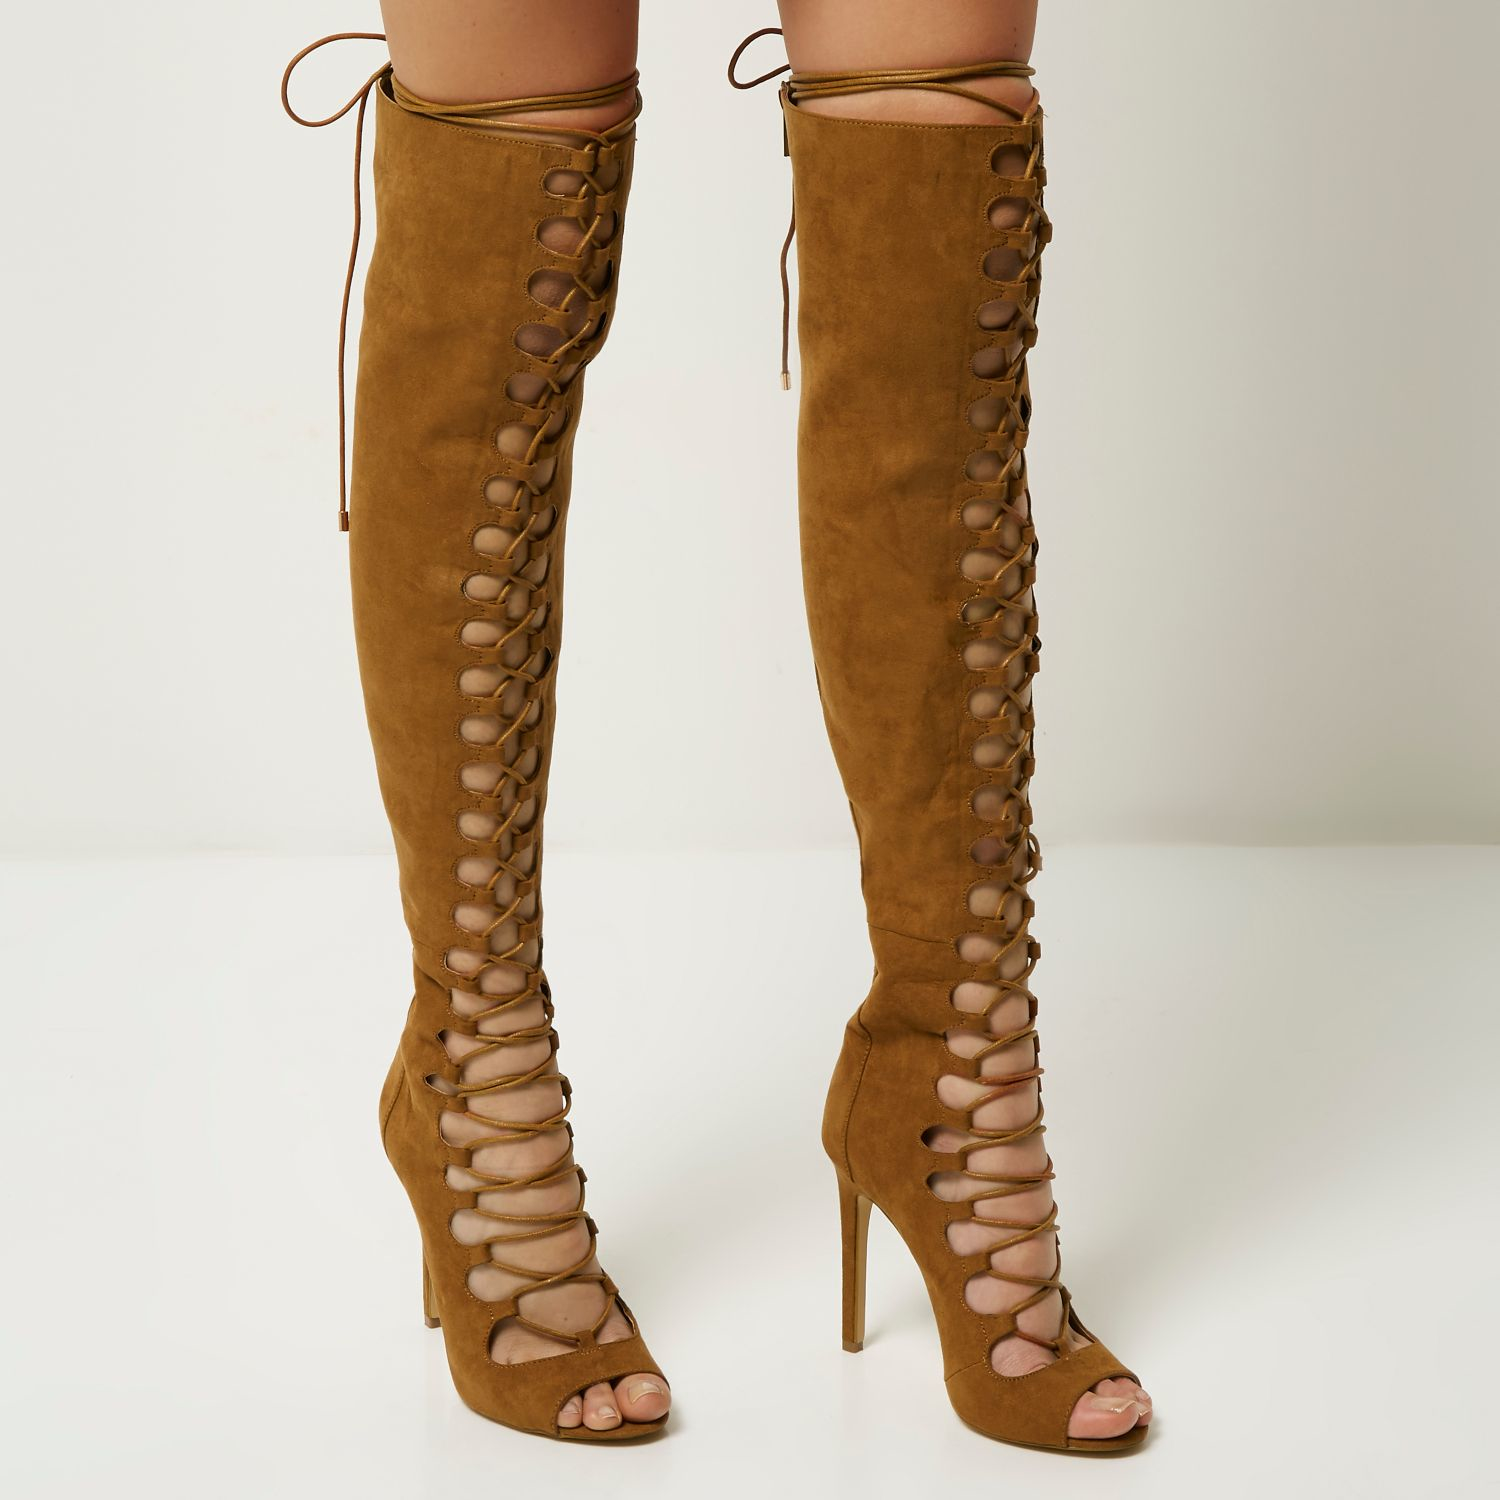 af38c23e3289e River Island Tan Lace-up Over The Knee Heeled Boots in Brown - Lyst